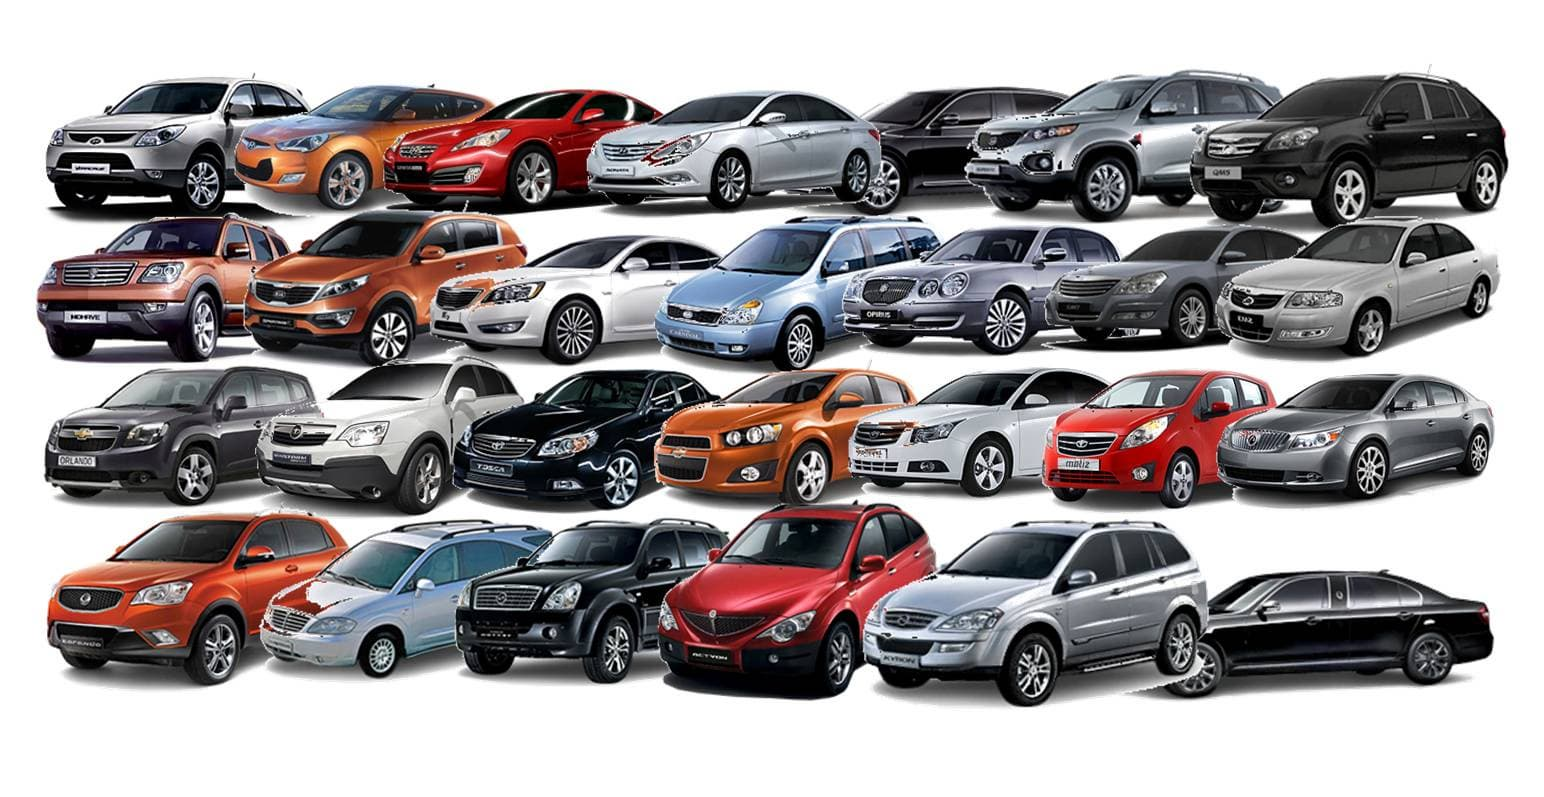 Korean Auto Parts For Passenger Cars Tradekorea